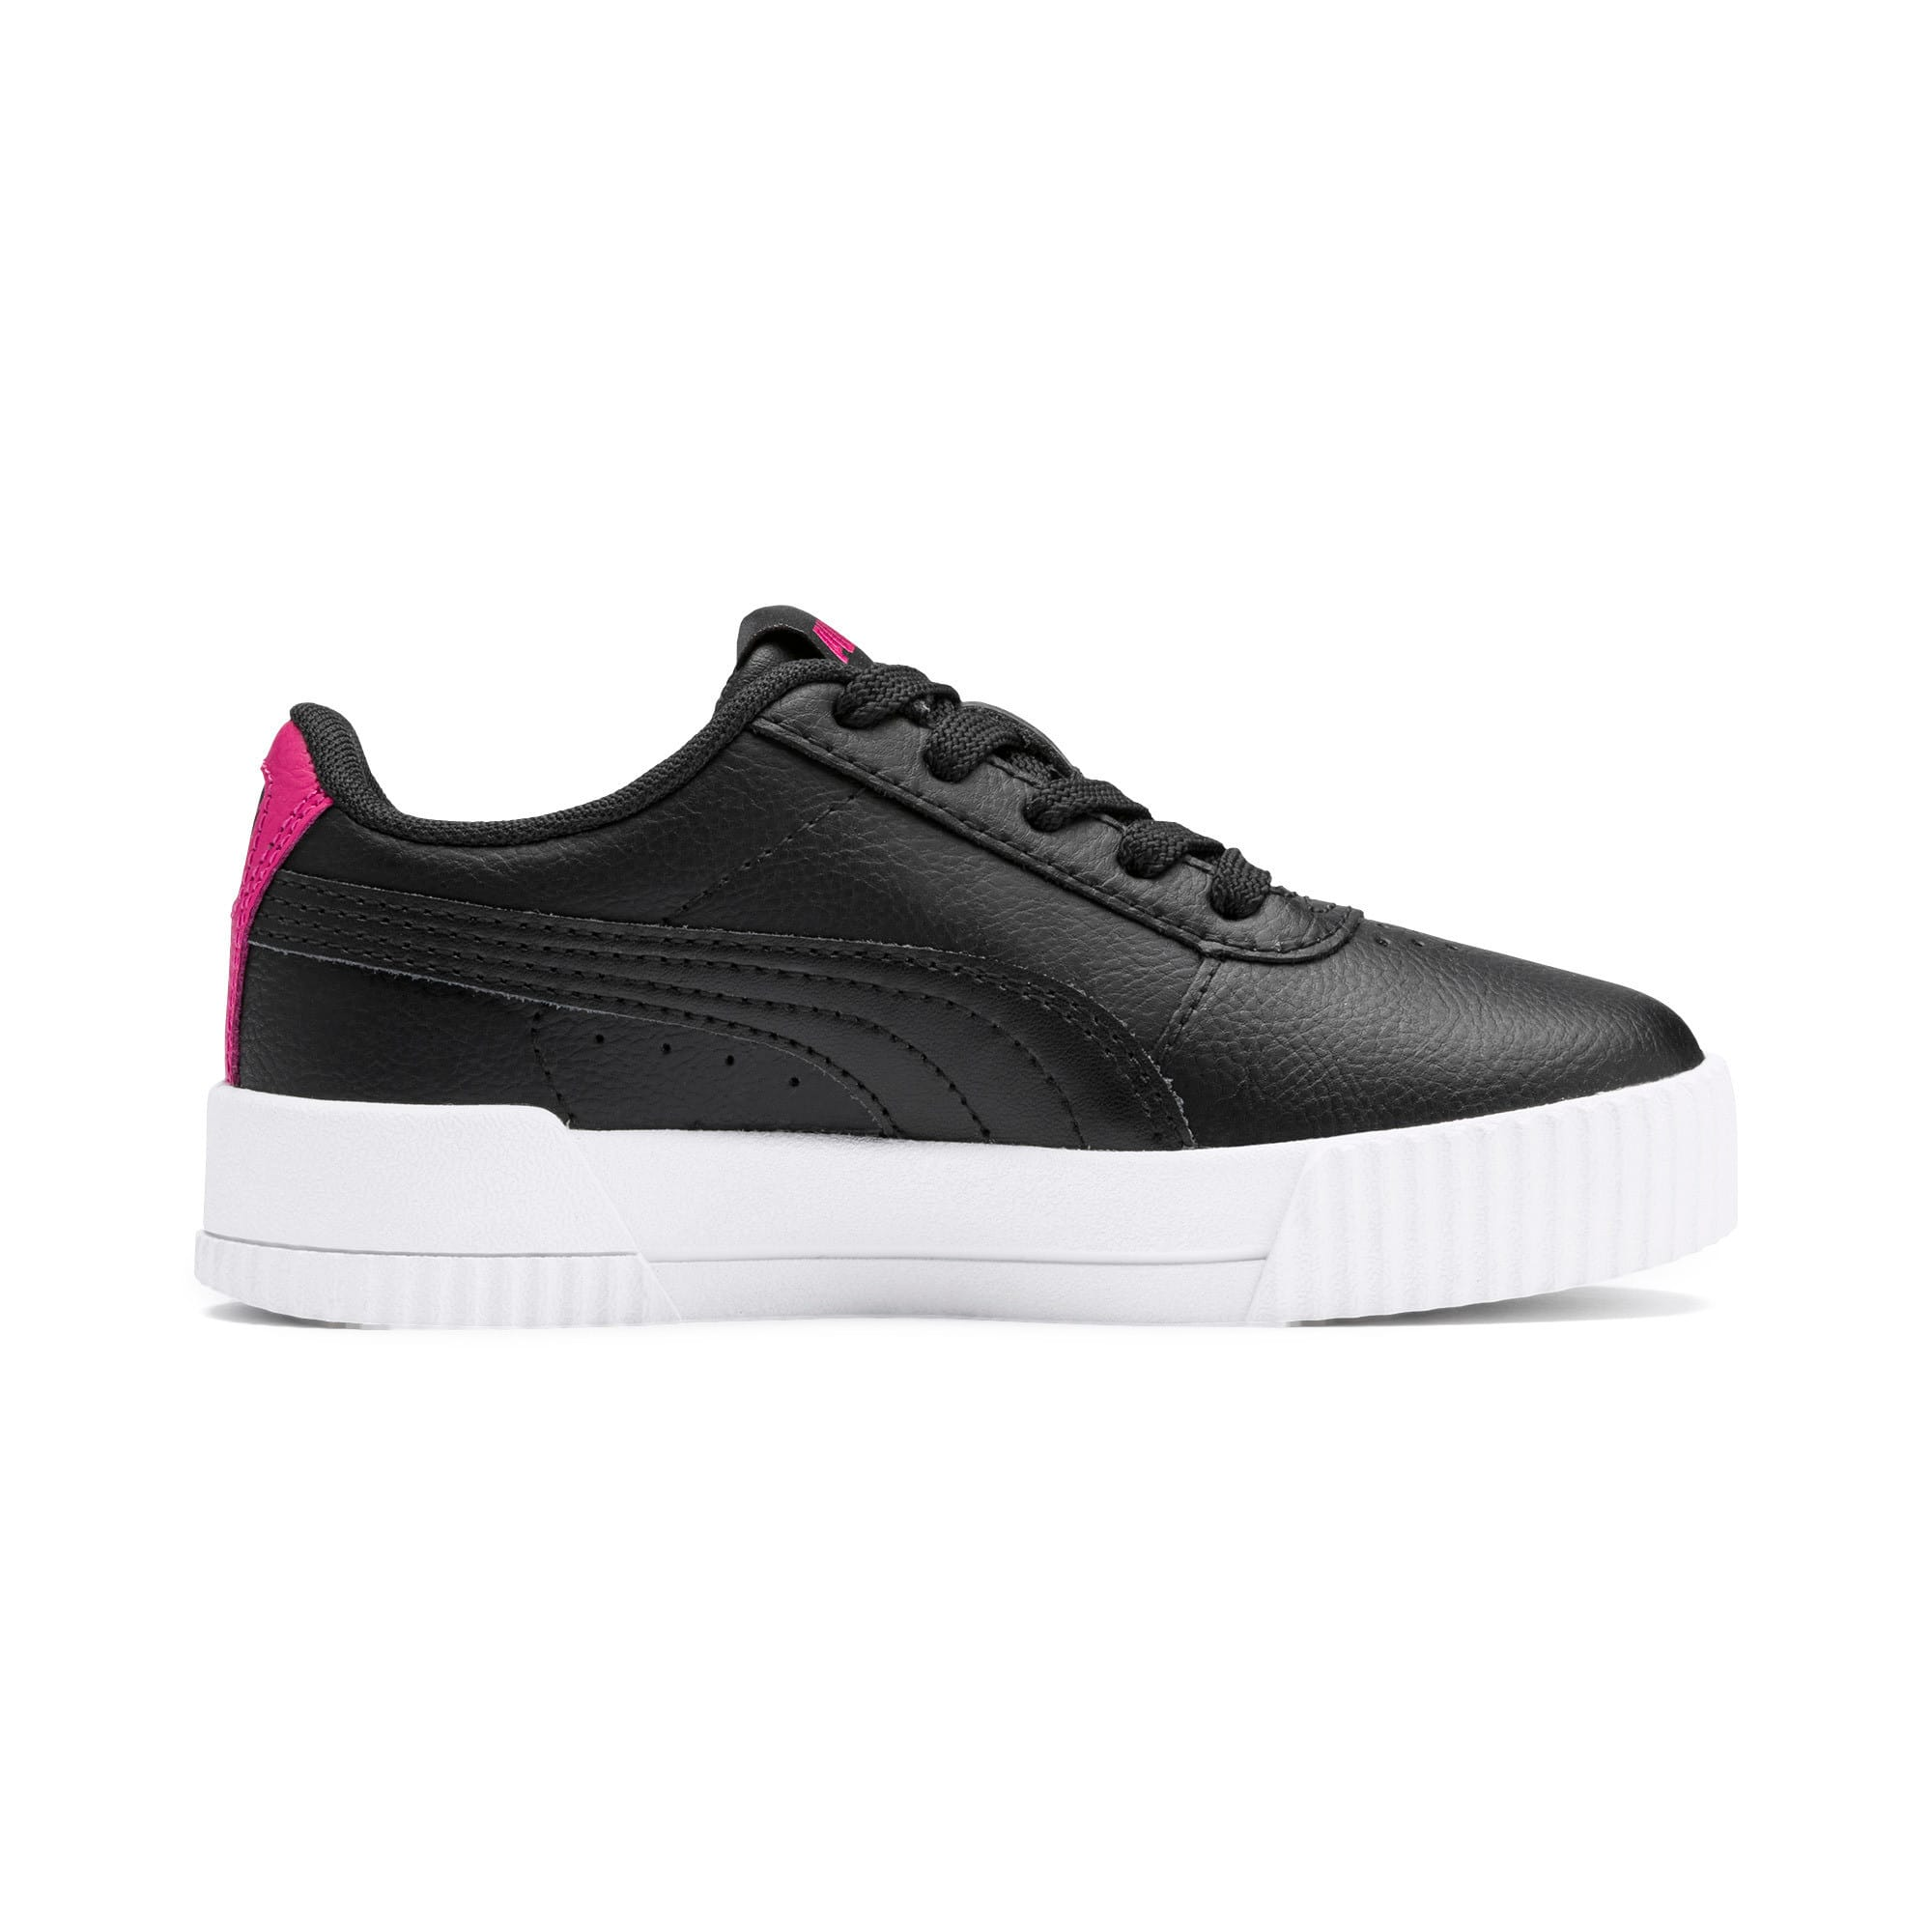 Thumbnail 5 of Carina L Kids' Trainers, Puma Black-Puma Black, medium